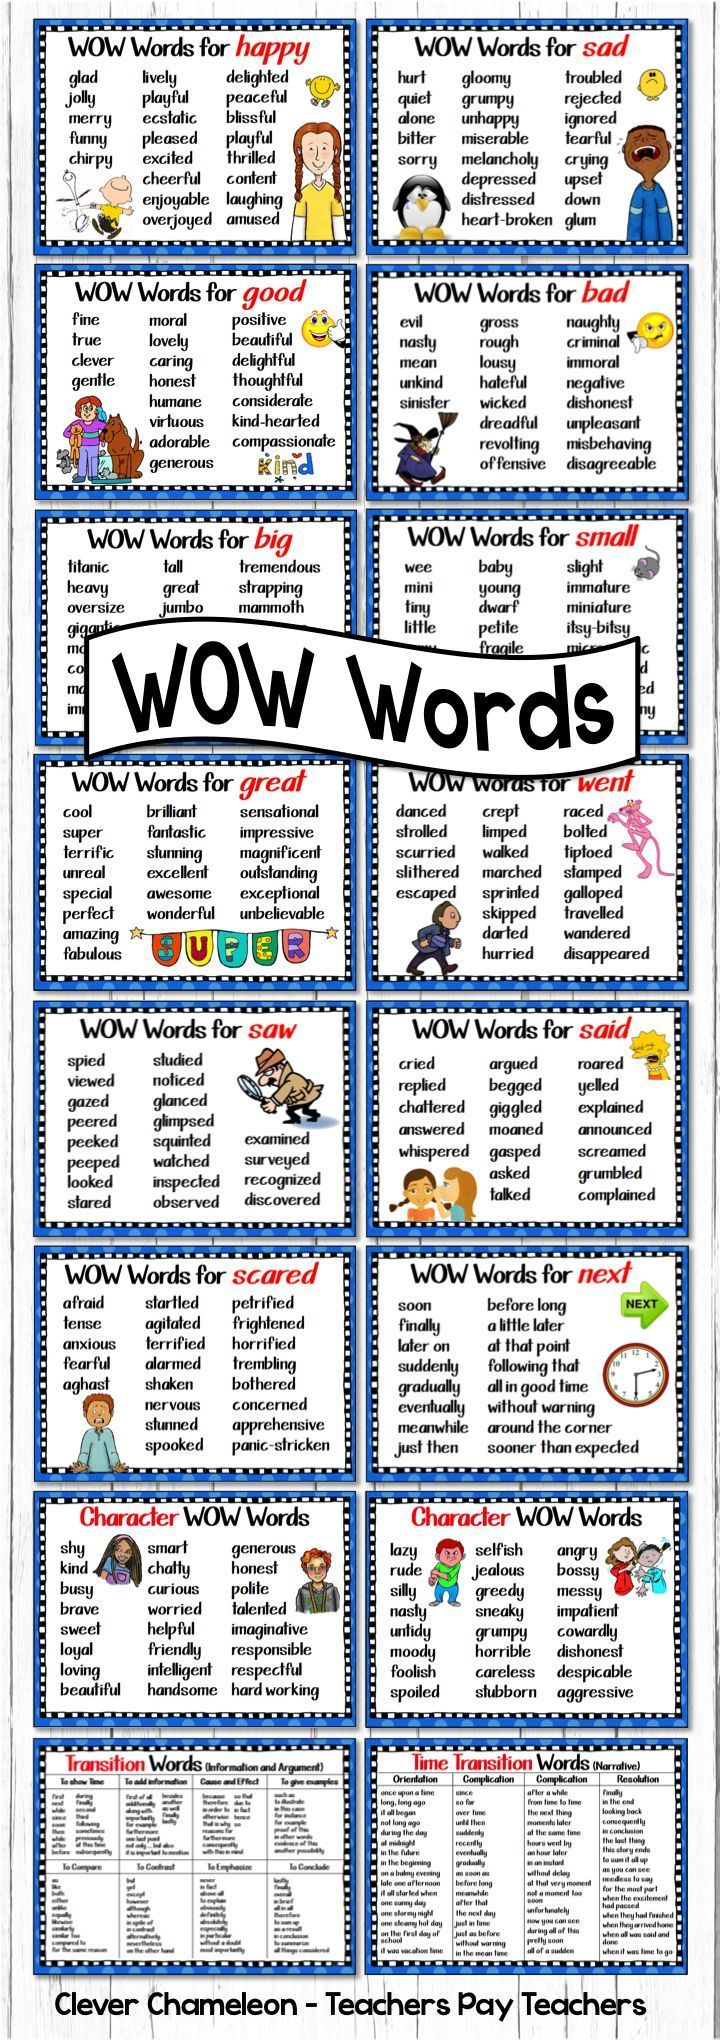 Other ways to say ... Said, Went, Scared, Big, Small, Sad, Happy, Saw, Next, Great, Good, Bad, Positive Character Words, Negative Character Words, Time Transition Words for Narratives and Transition Words for Information and Argument Texts. (16 page digit